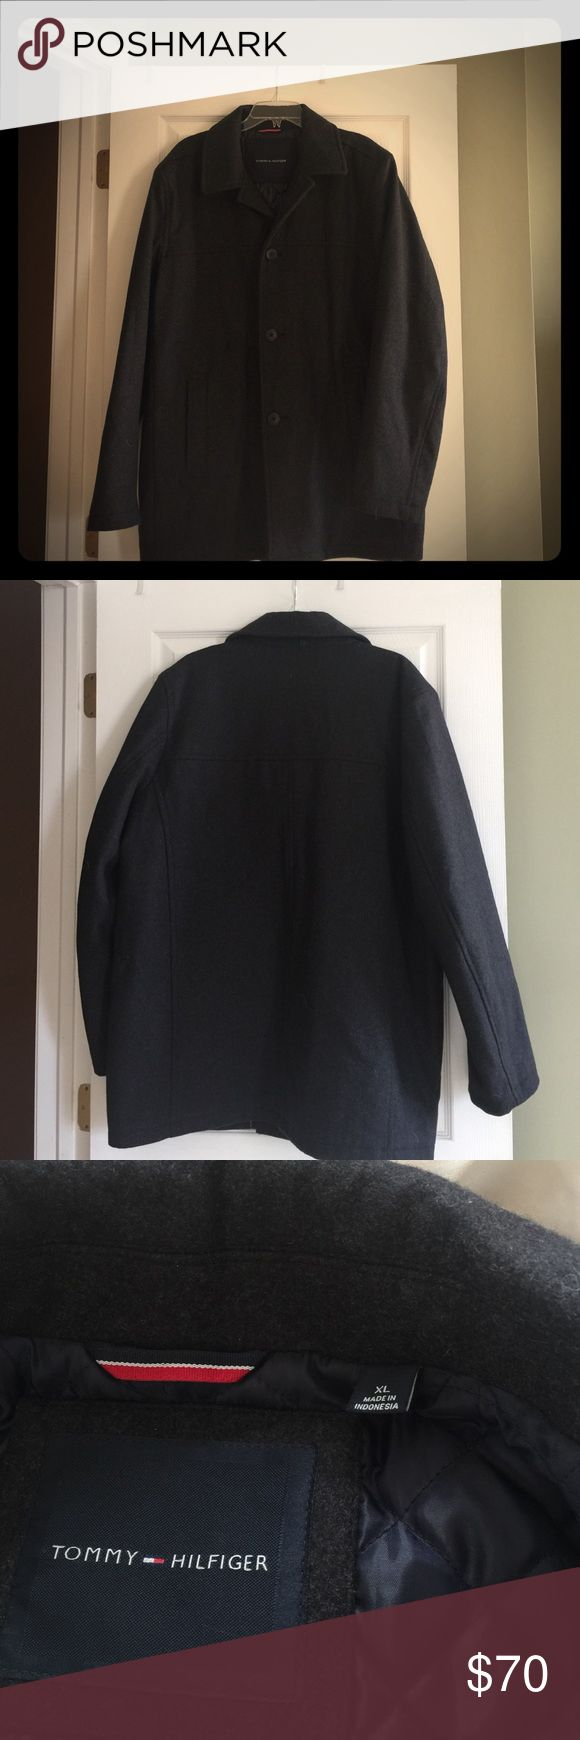 "Tommy Hilfiger Men's dress coat Dark gray Dress/Pea coat nice heavy weight coat with quilted interior. Hardly worn. 32"" long from shoulder. Tommy Hilfiger Jackets & Coats Pea Coats"